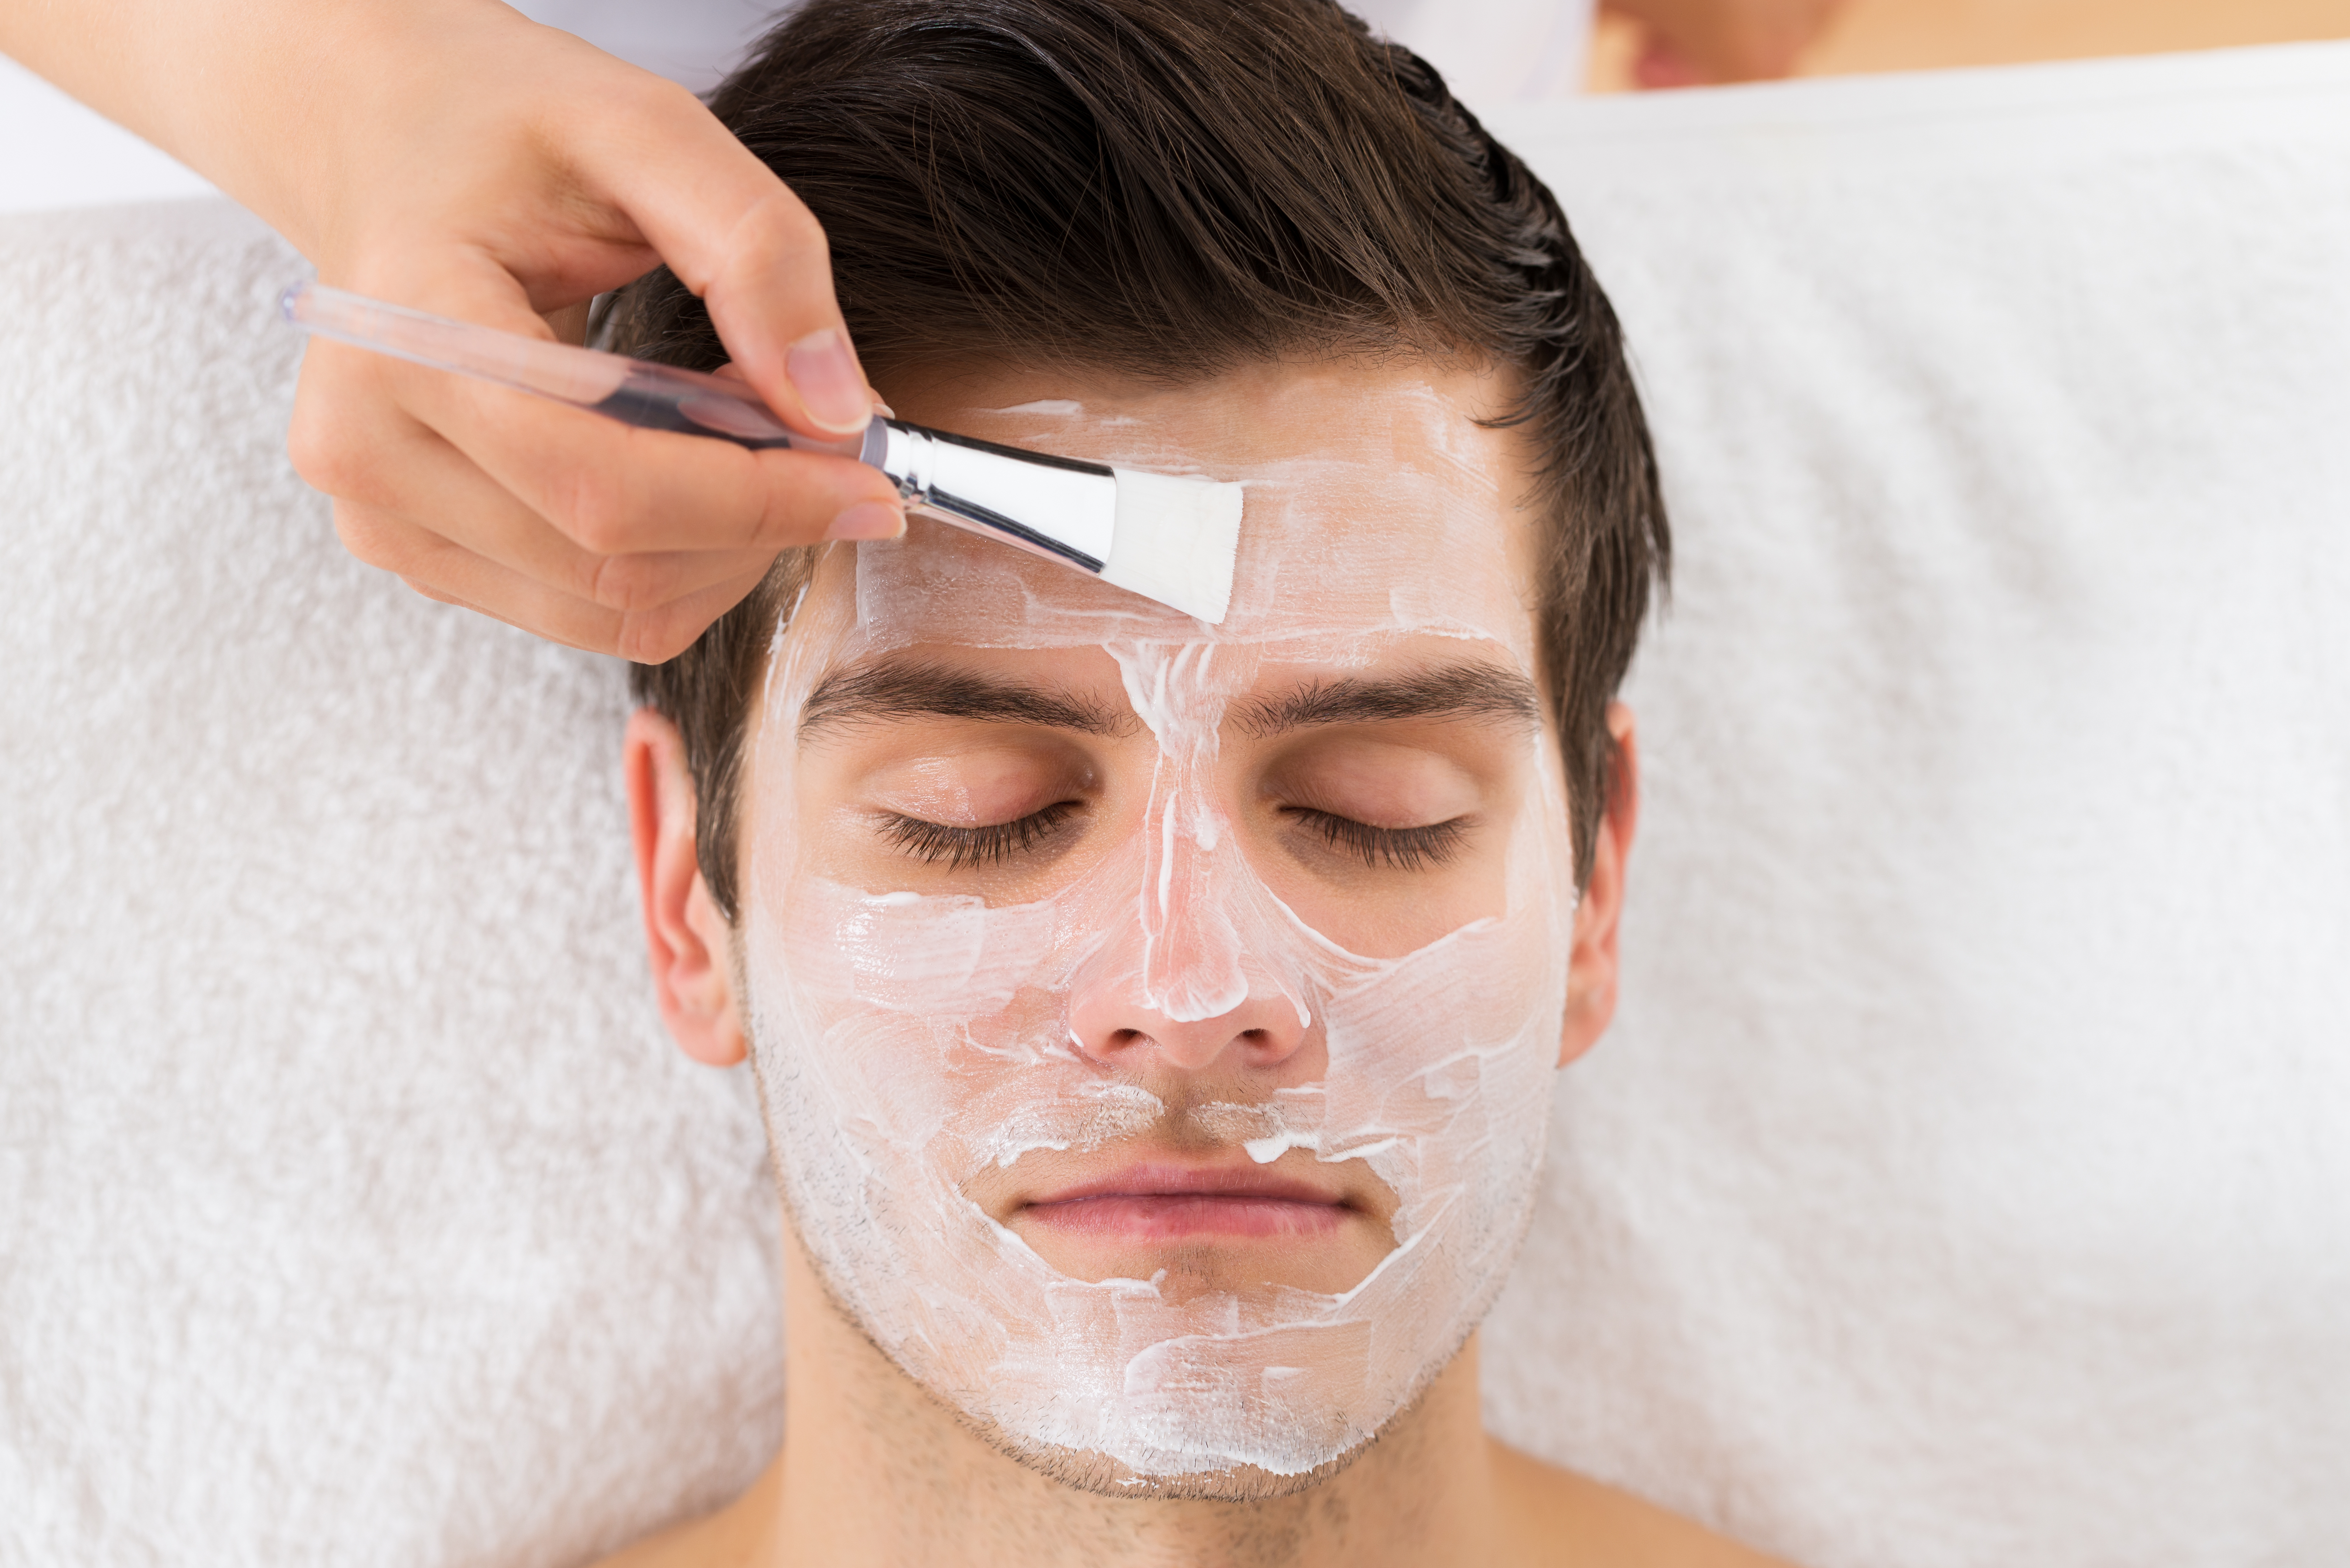 Therapist Hands With Brush Applying Face Mask To A Young Man In A Spa